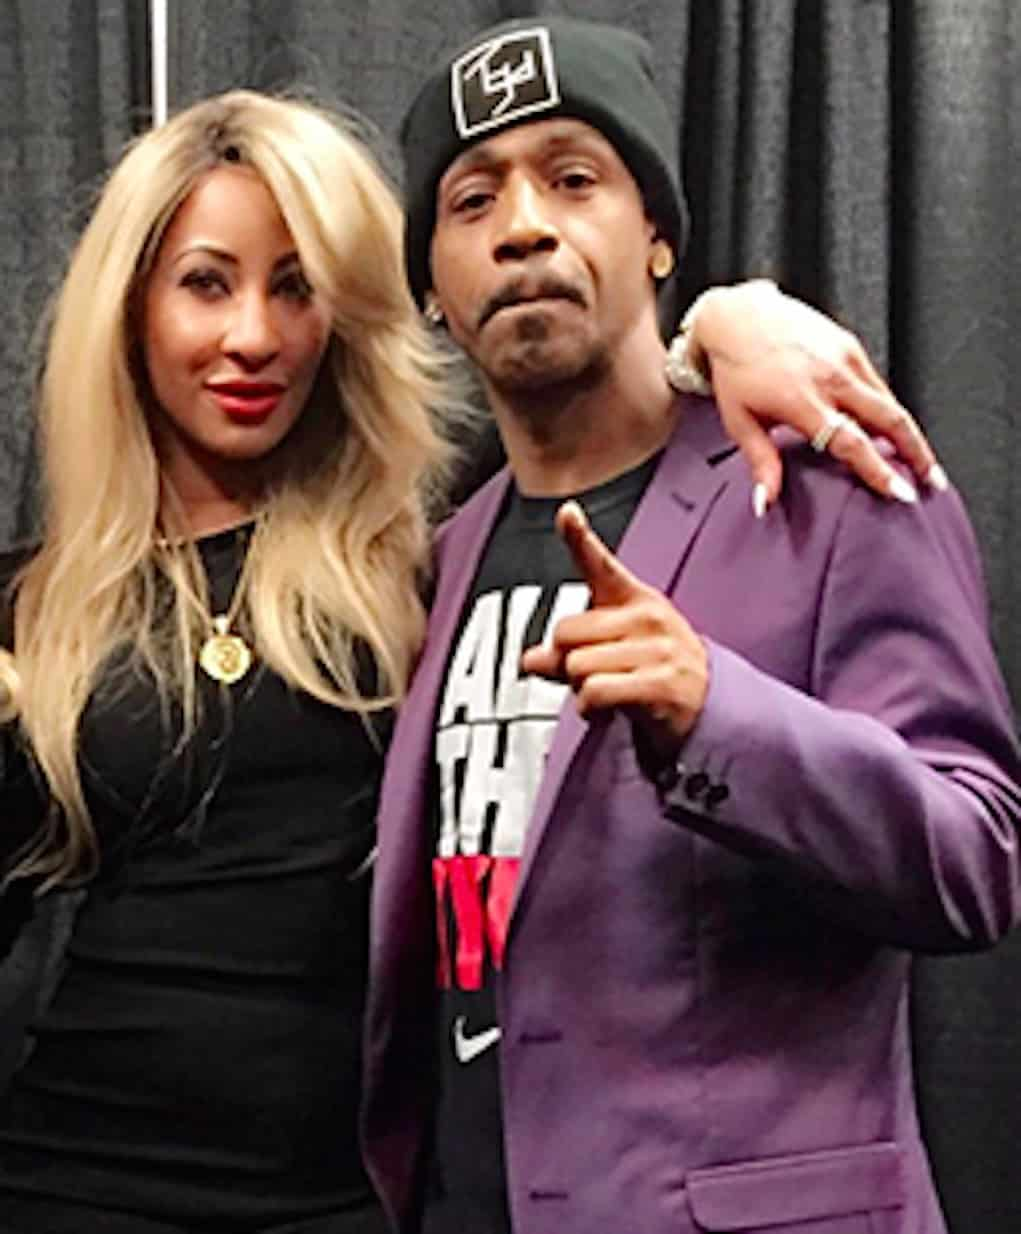 hazel e arrested katt williams